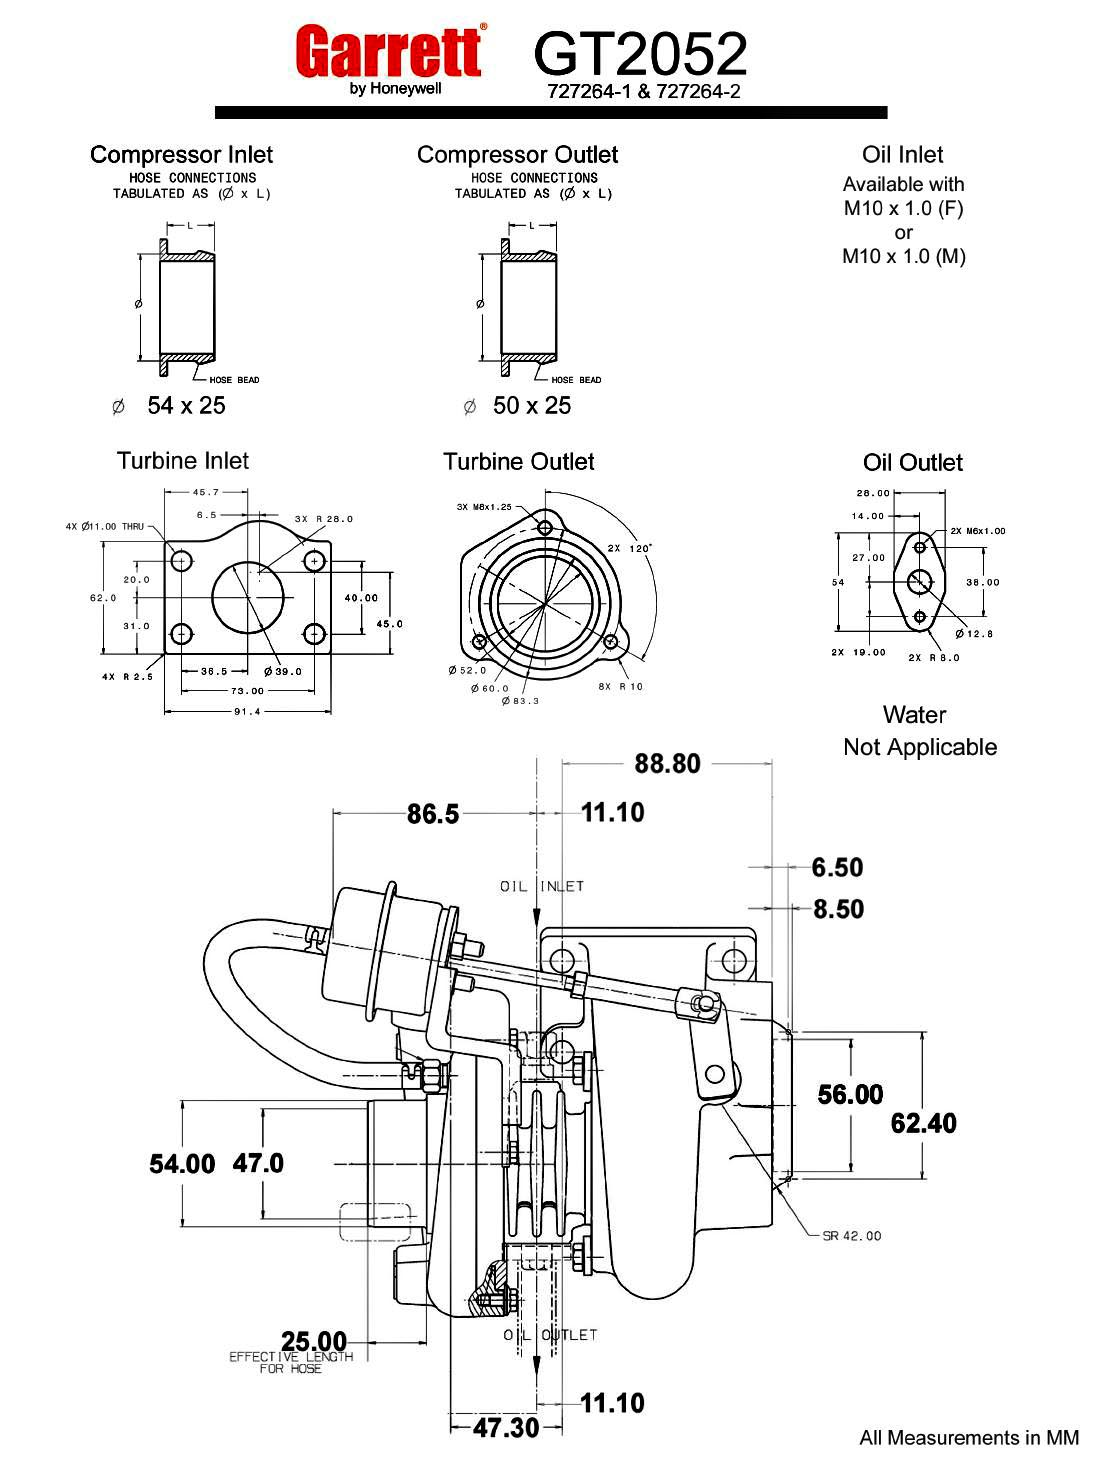 Garrett Gt20 Gt2052 52 Trim 225 Hp Turbocharger Specs 1999 Disco 2 Wiring Diagram Turbo Measurements In Mm Flanges Diameter Flange Honeywell 1098x1468